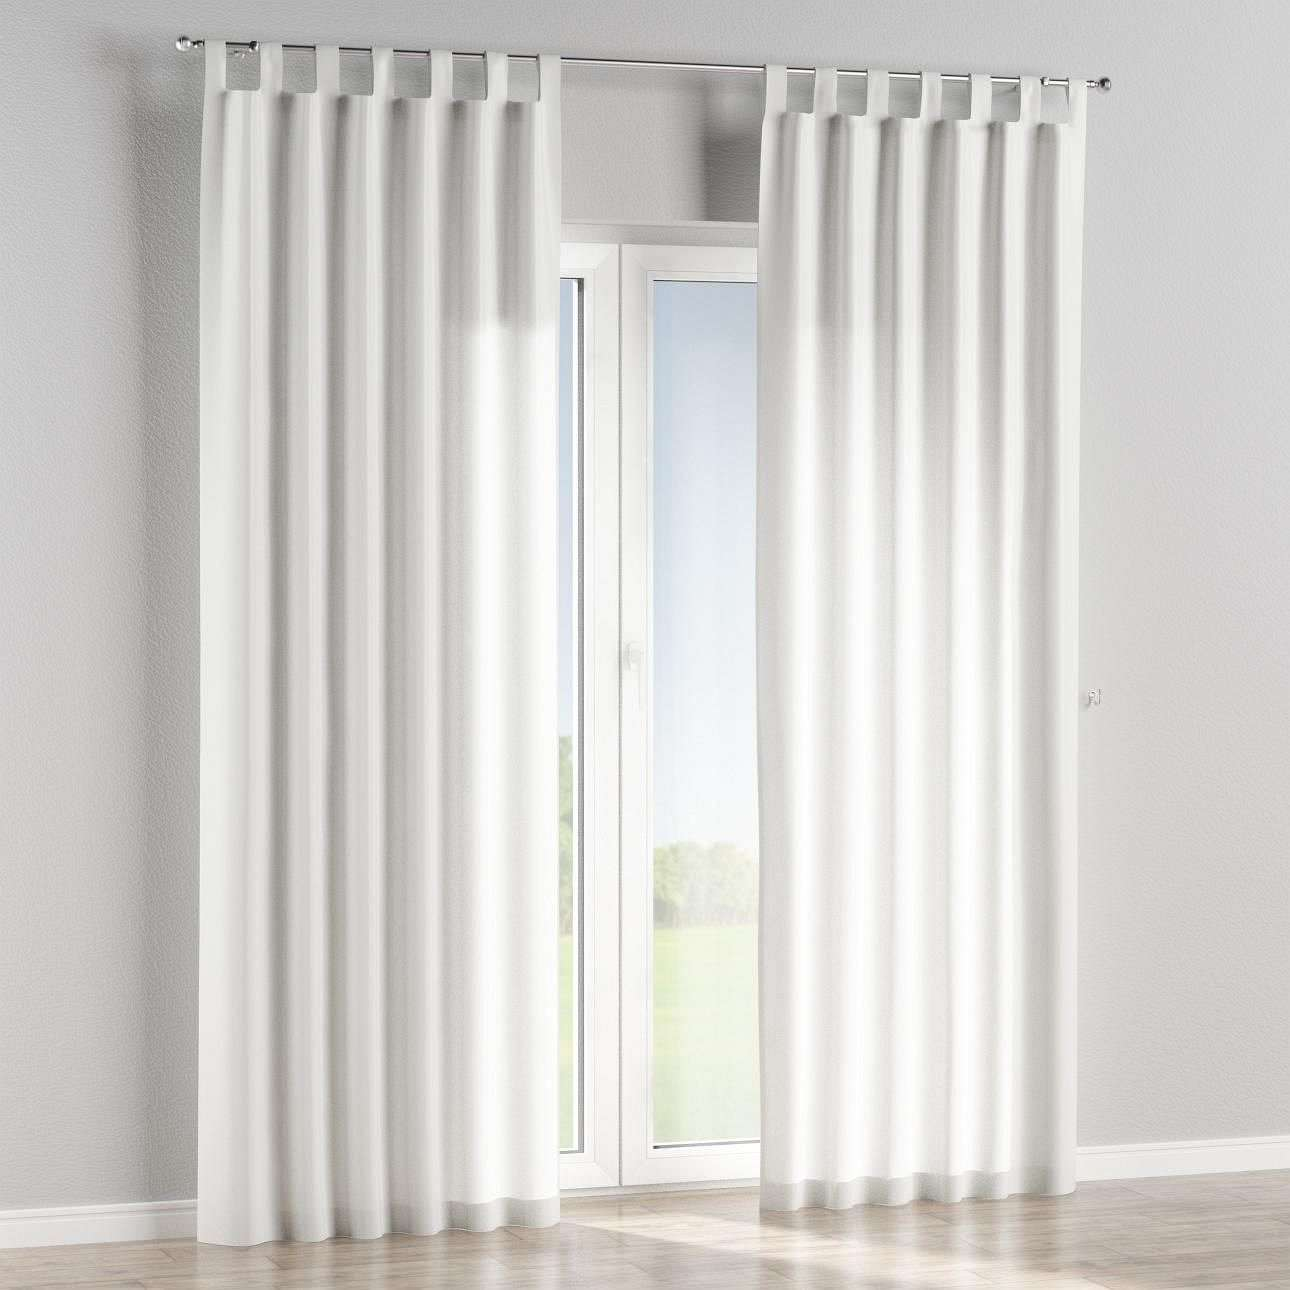 Tab top lined curtains in collection Odisea, fabric: 411-38